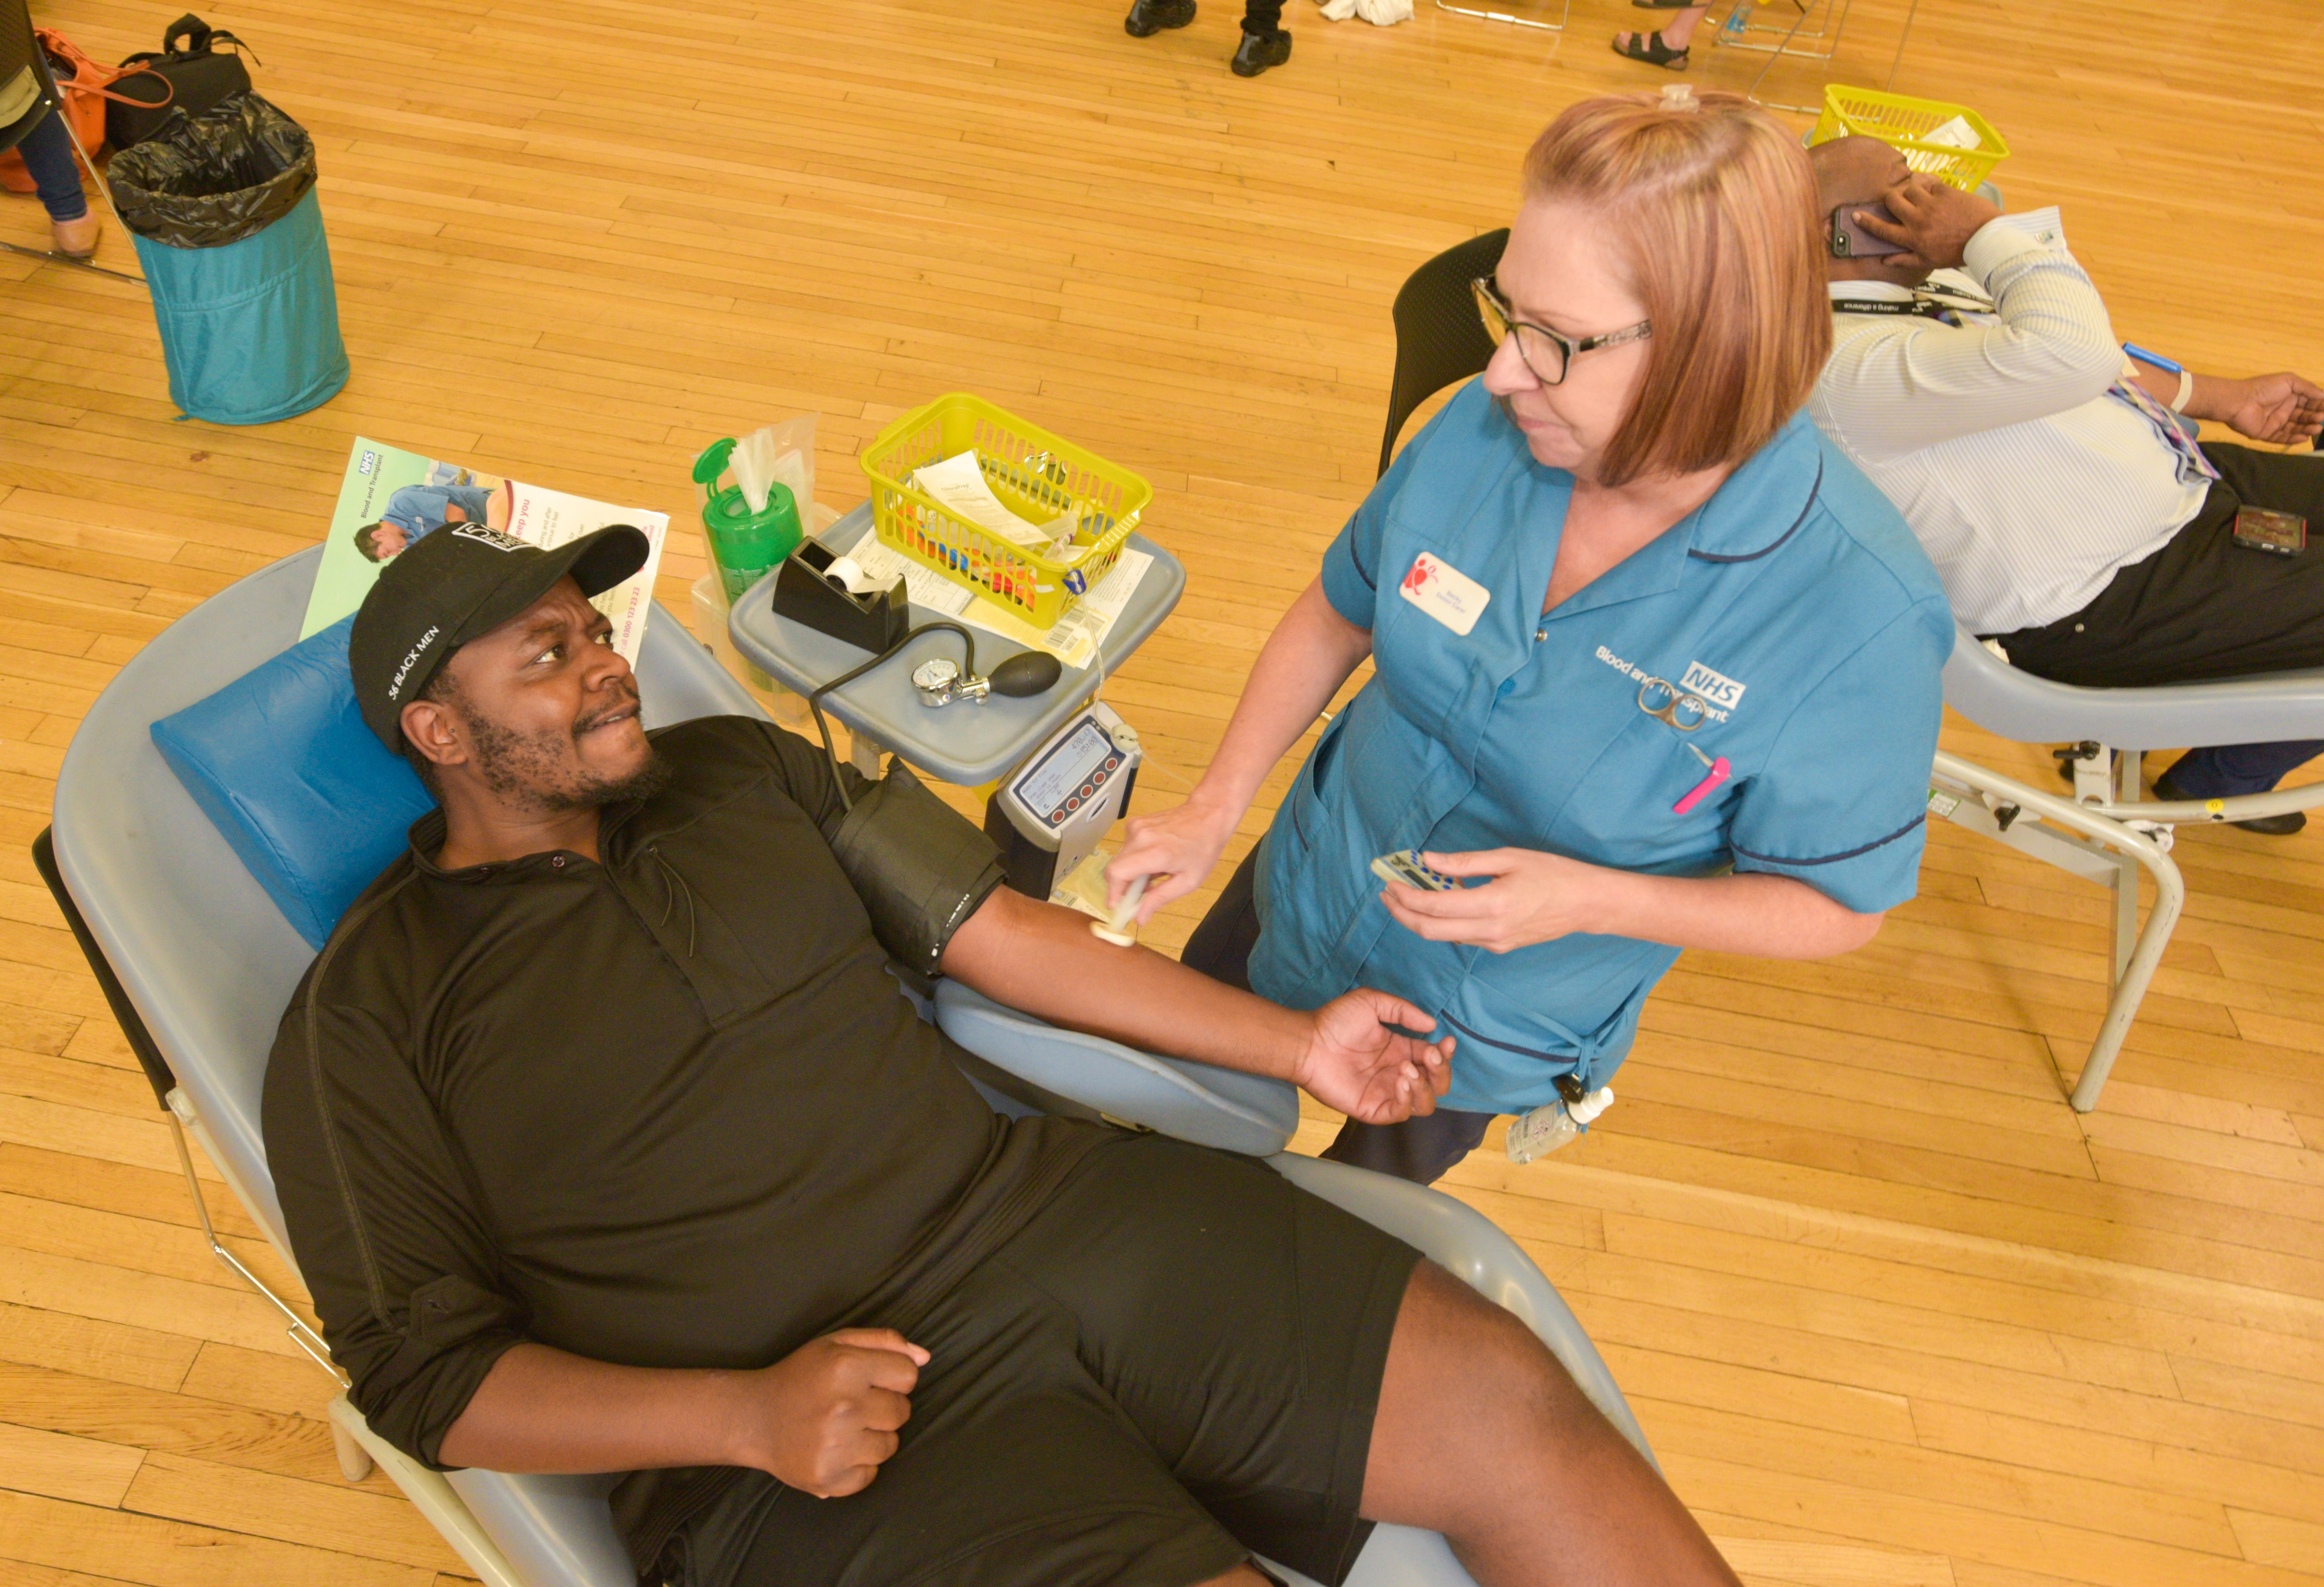 Bird's eye view of a donor carer cleaning a man's arm before he gives blood